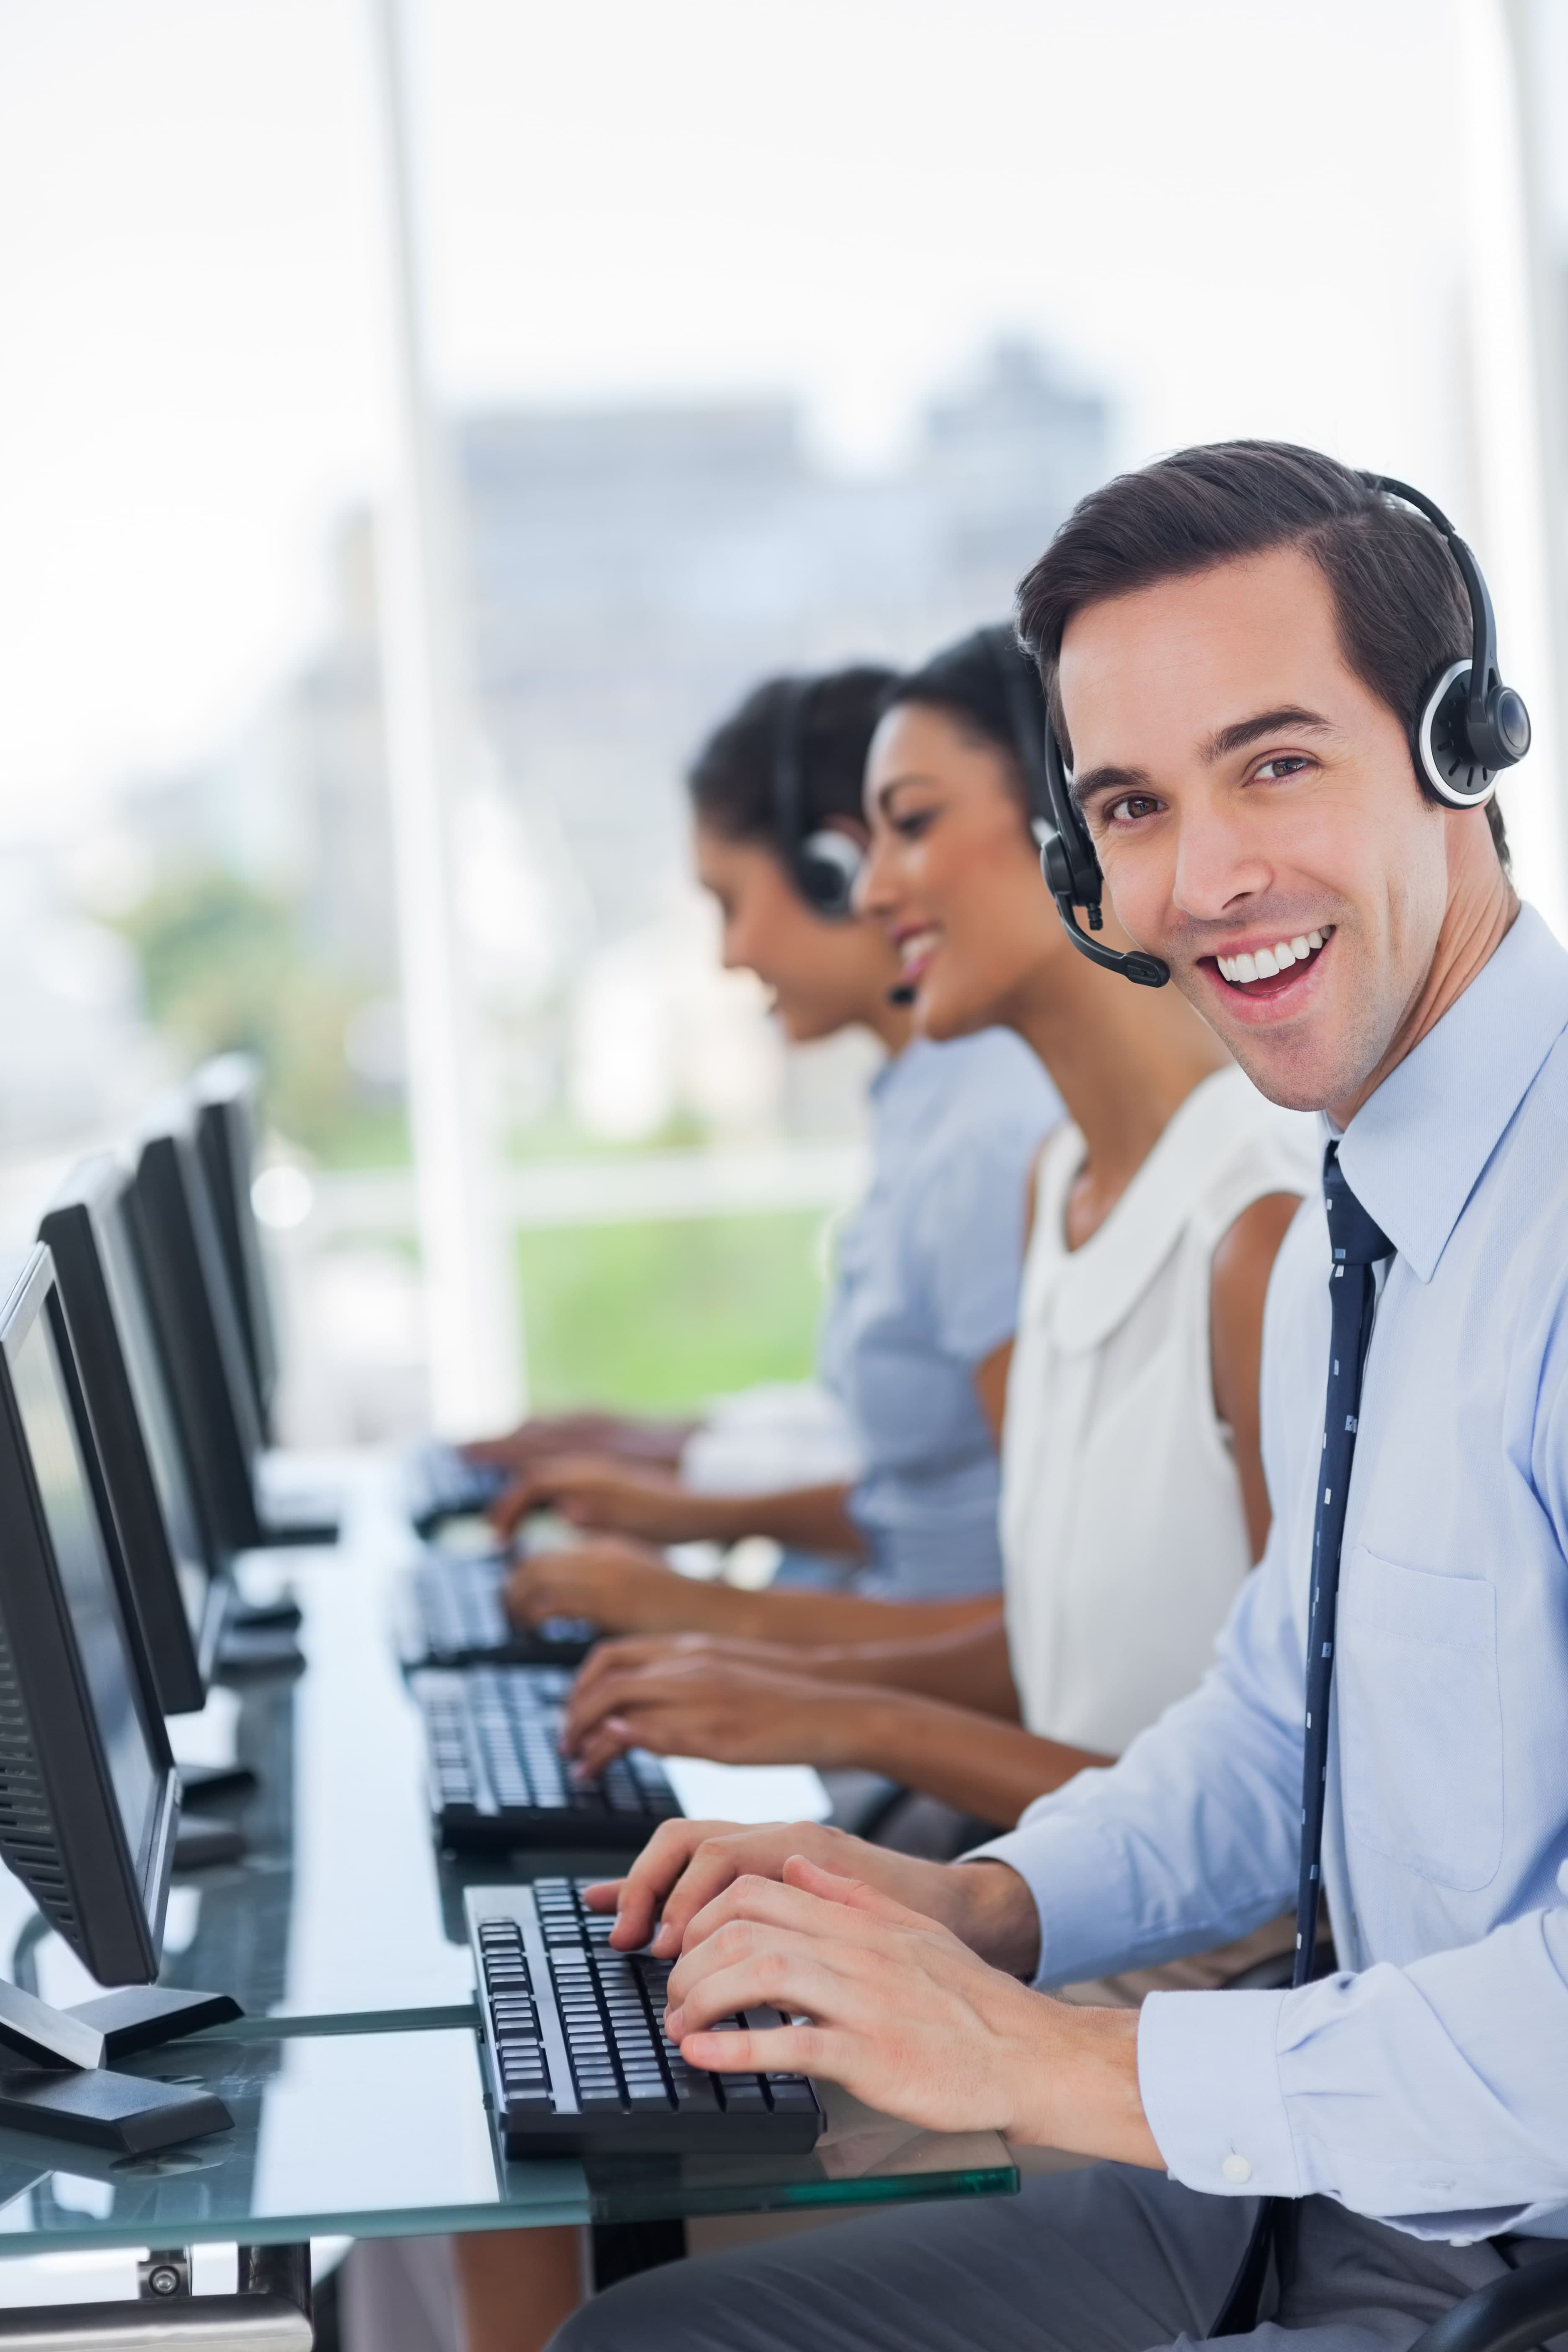 Your Corporate Voice: Handling High-Emotion Service Calls